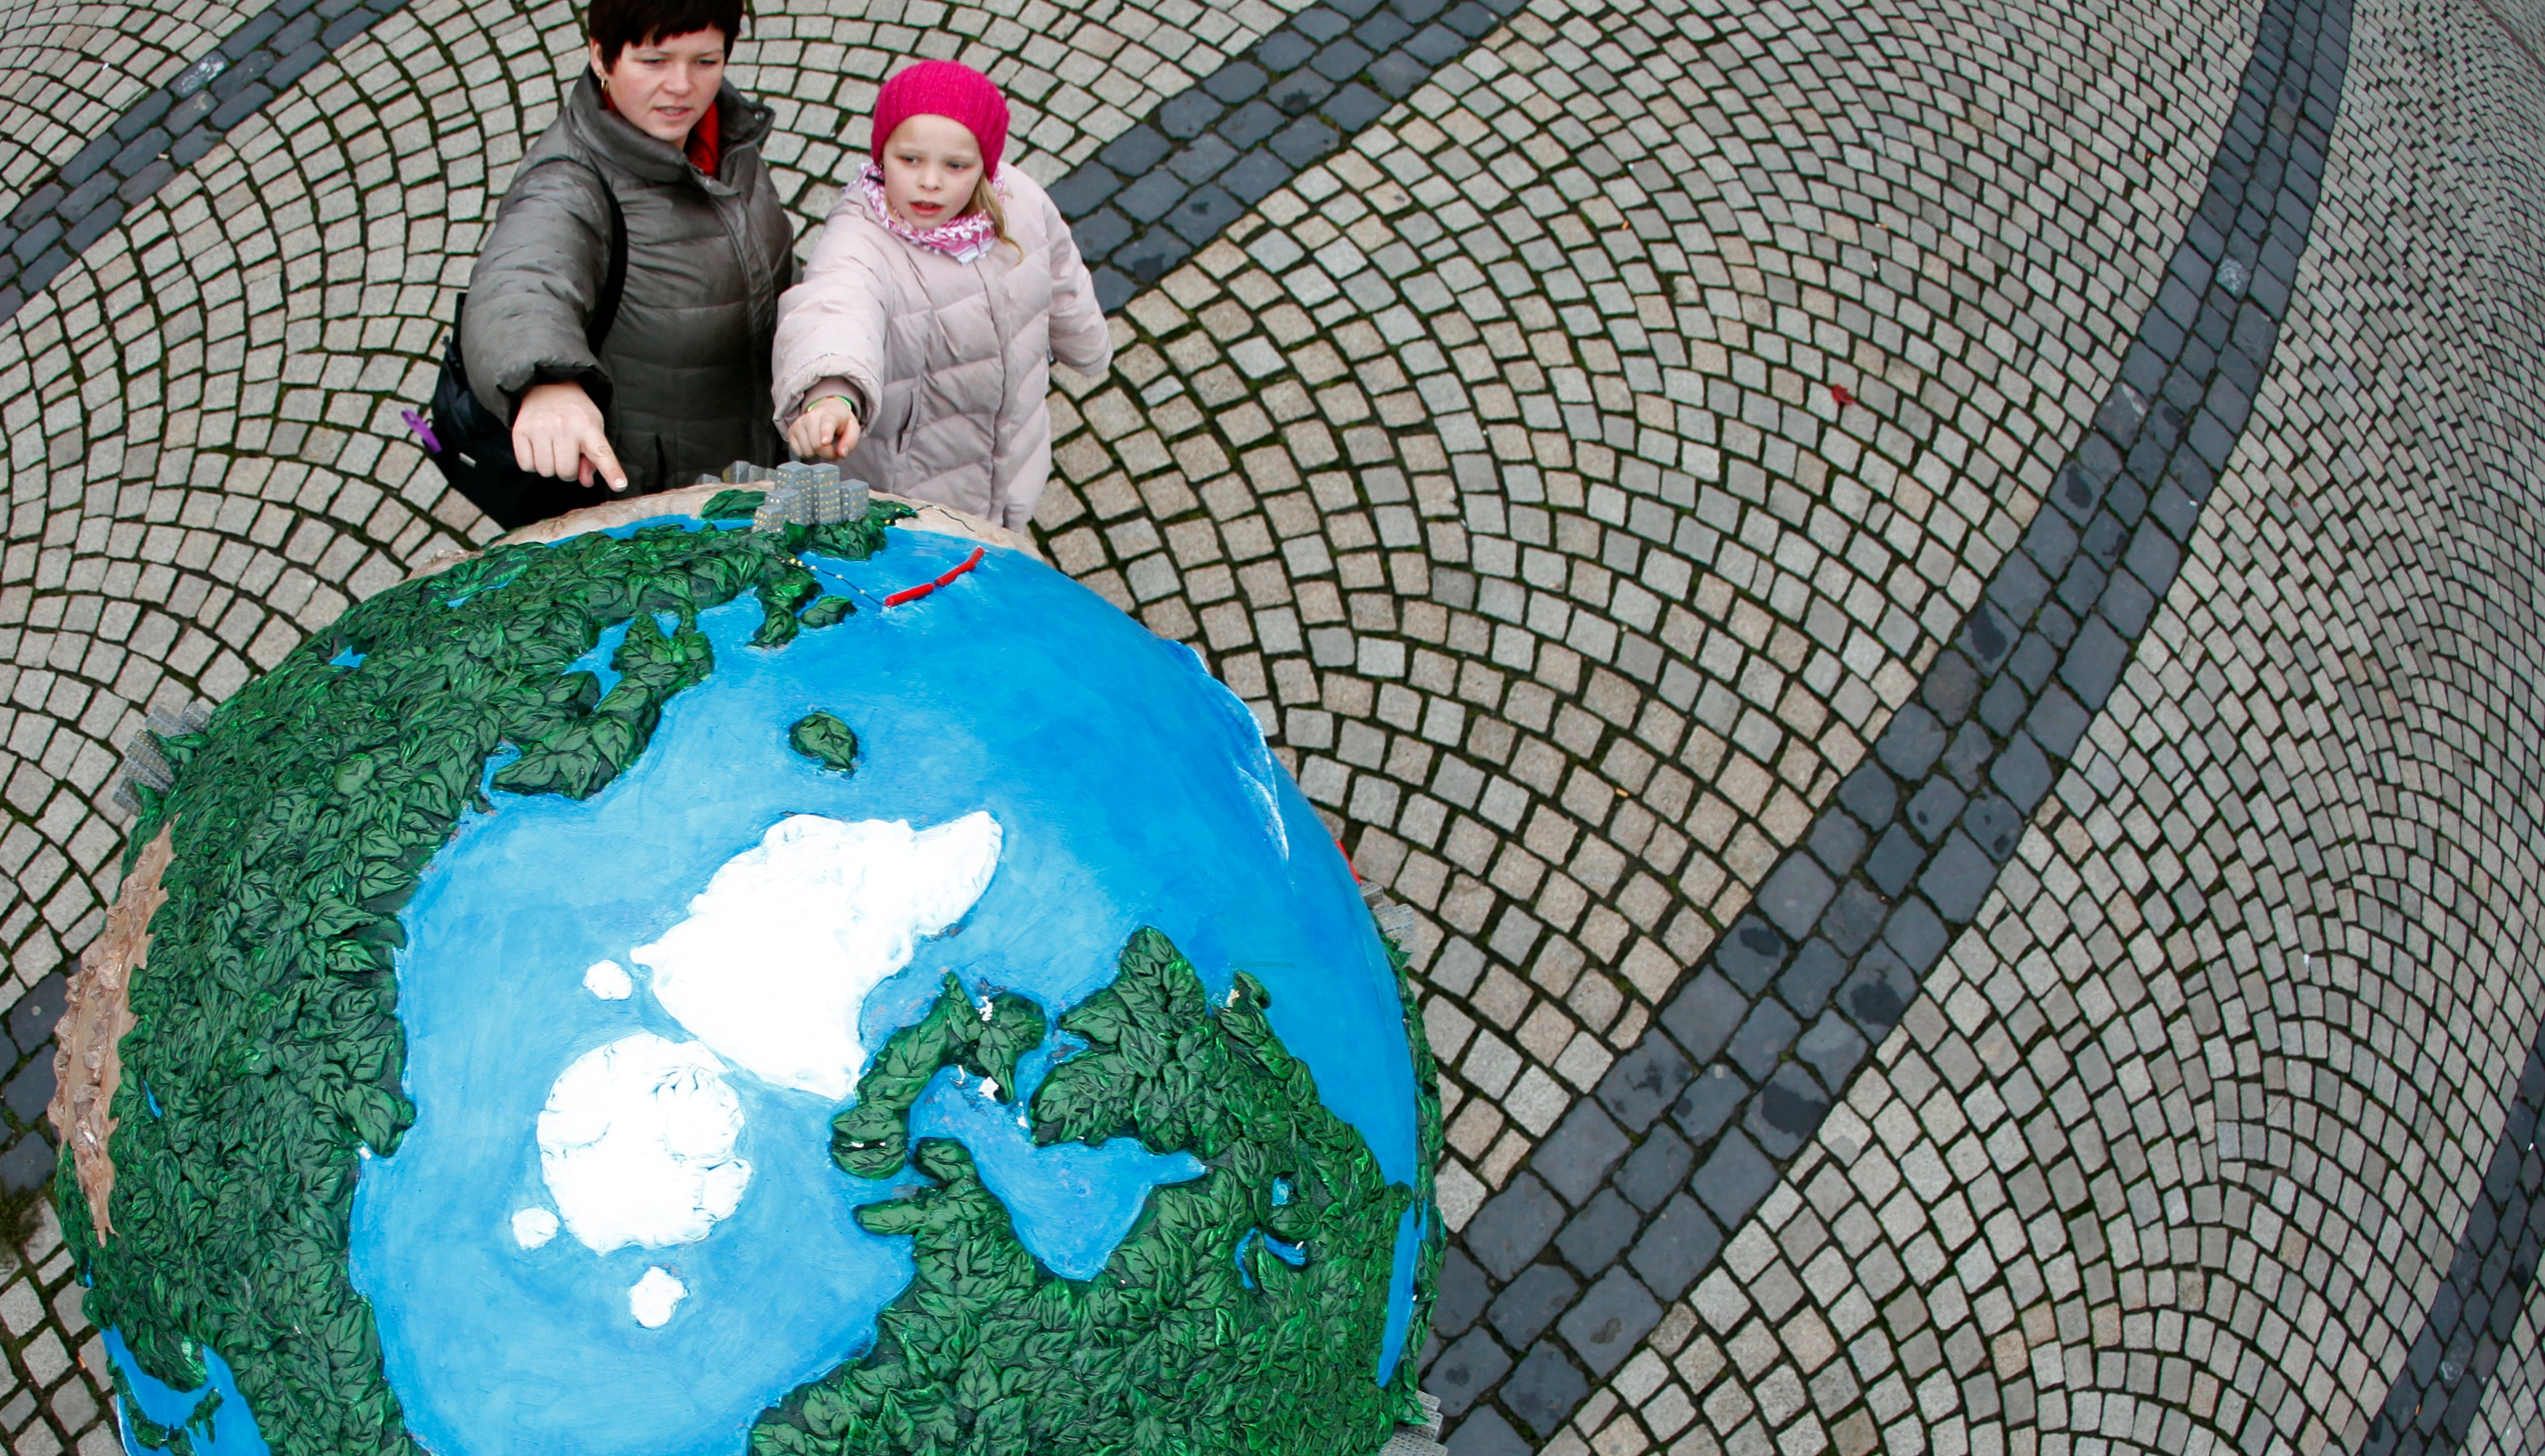 People look at a globe which is a part of of an installation in downtown Copenhagen December 6, 2009. Copenhagen is the host city for the United Nations Climate Change Conference 2009 which starts from December 7 until December 18.   REUTERS/Pawel Kopczynski  (DENMARK ENTERTAINMENT ENVIRONMENT IMAGES OF THE DAY) - GM1E5C61T3J01